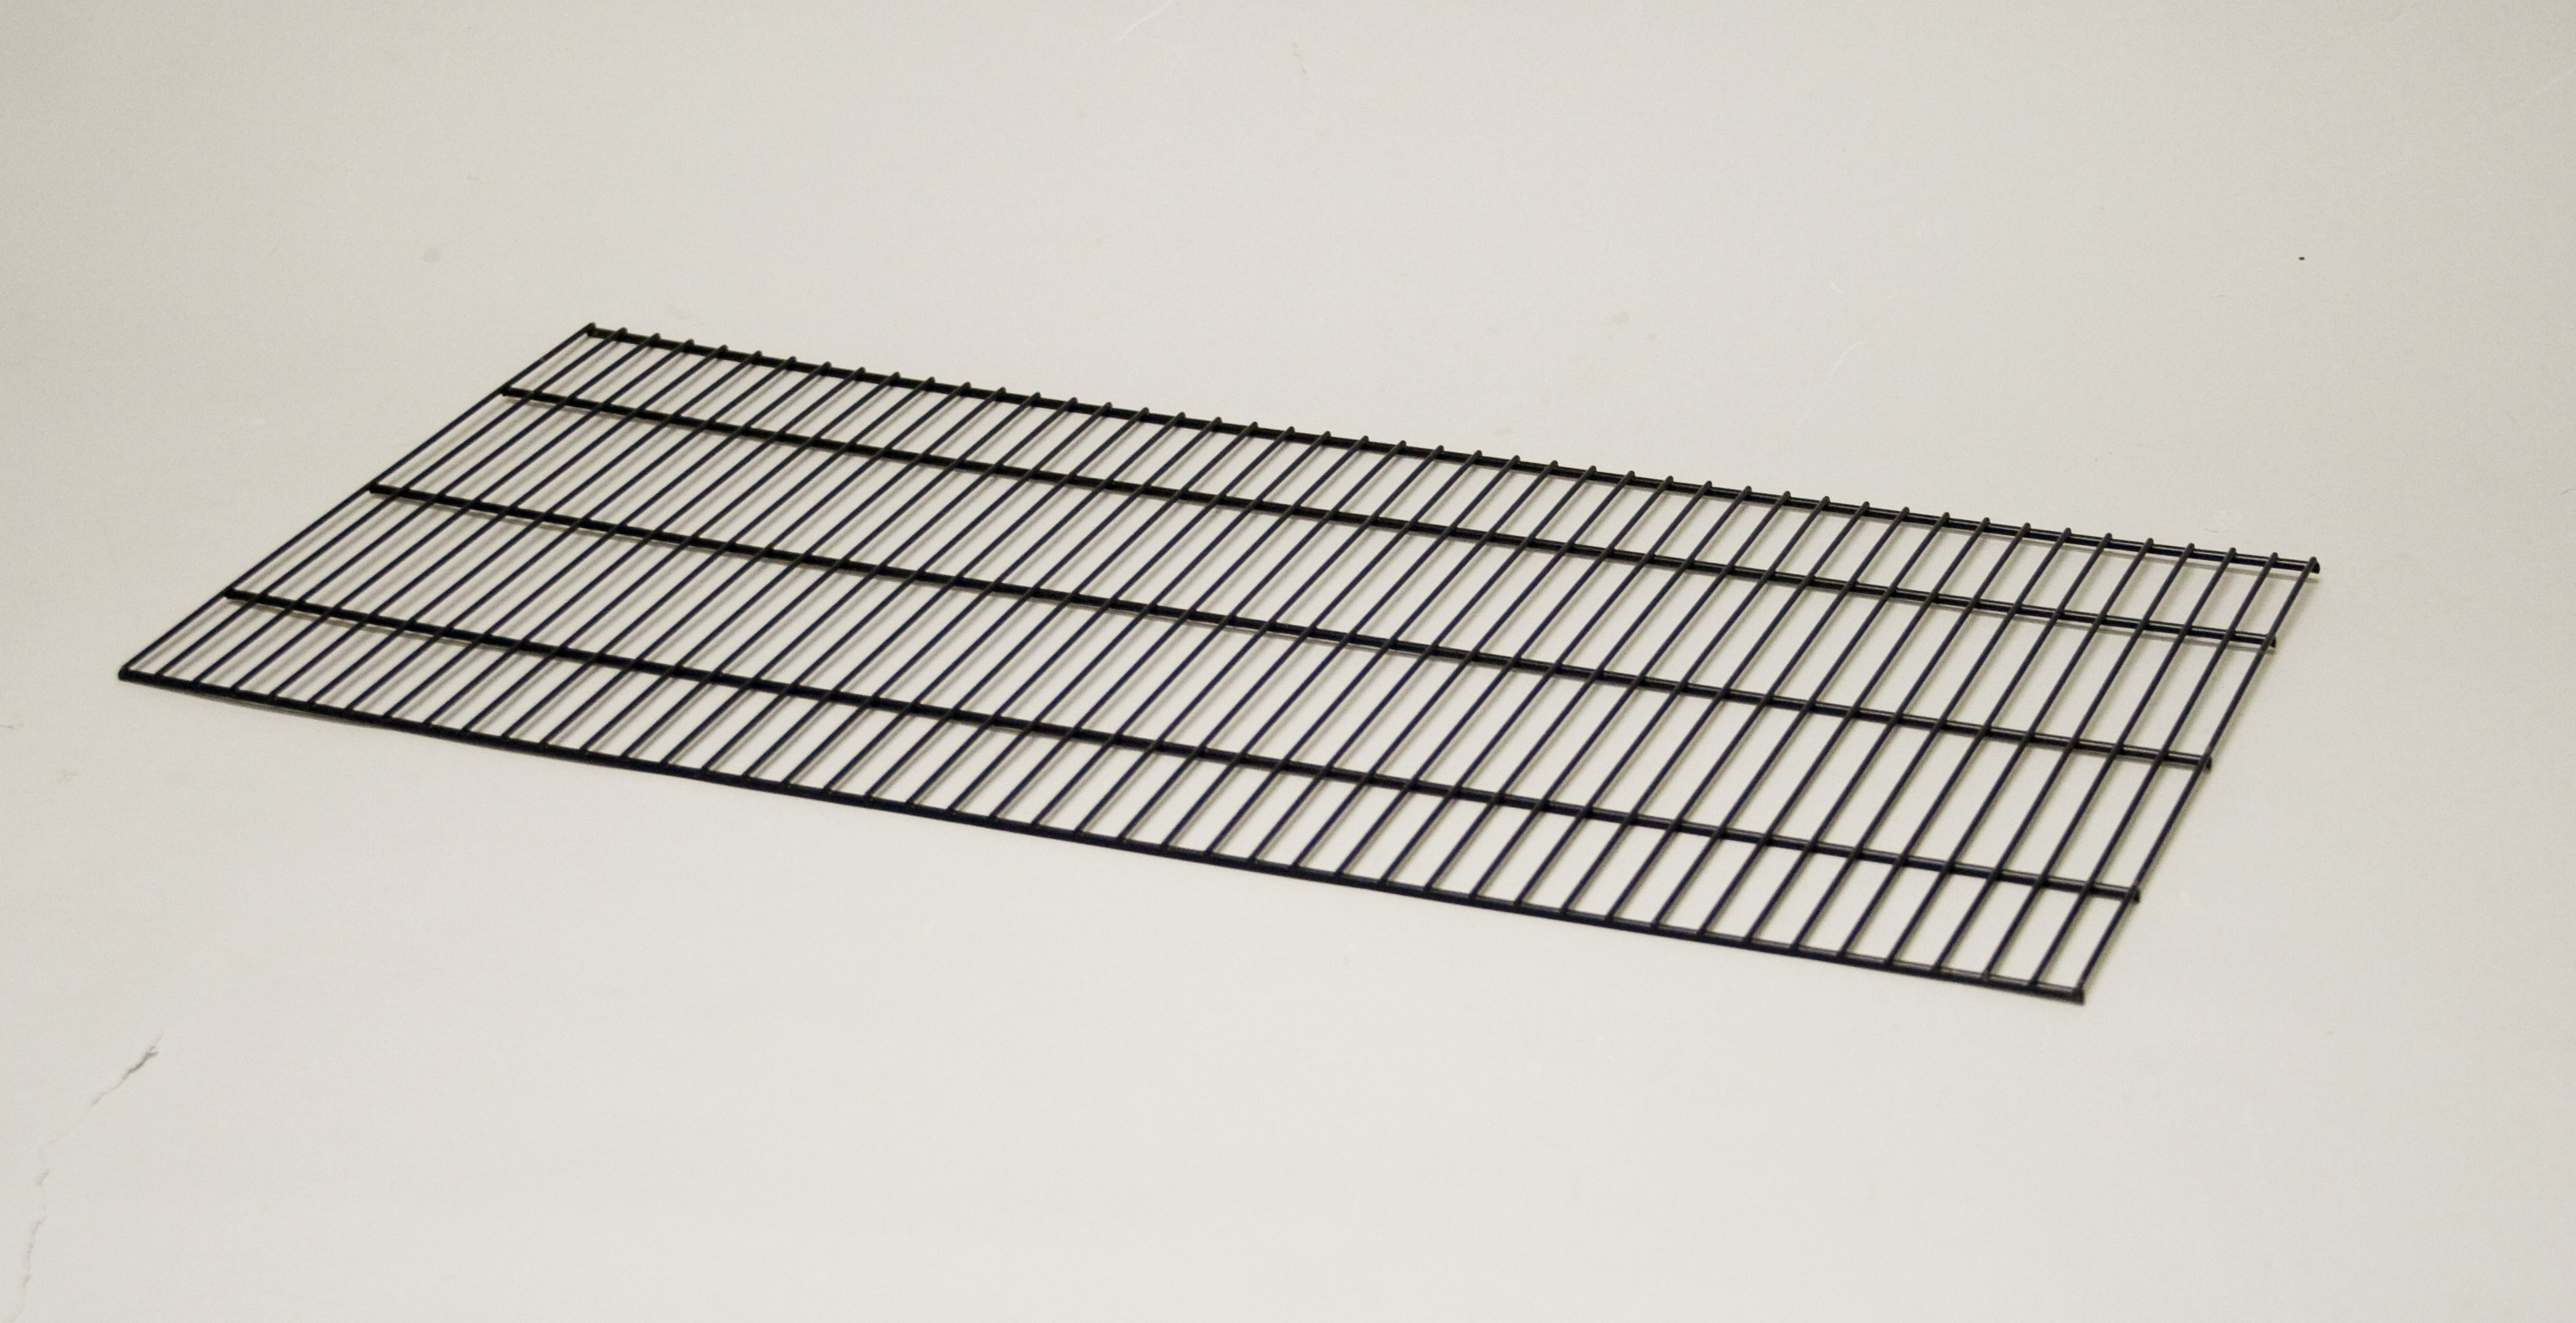 Replacement Floor Grid for Medium Premium Plus Hutch (WA 01515)